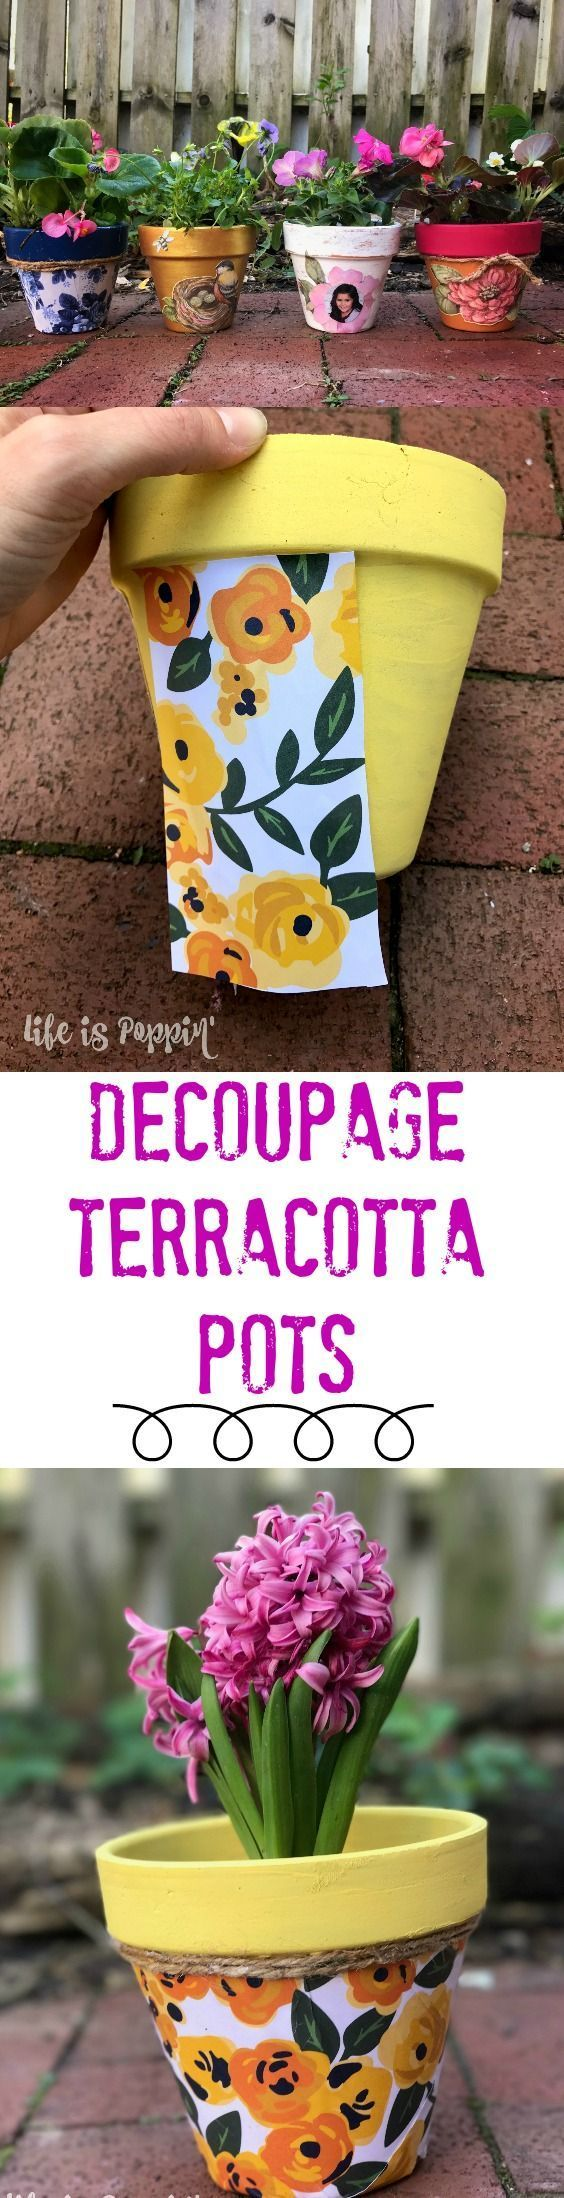 A quick tutorial of how to make these easy and inexpensive decoupage terracotta pots just in time for Mother's Day! Make Mom something extra special this year without breaking the bank! I'm going to show you how to decoupage these terracotta pots into something beautiful that Mom will just adore.